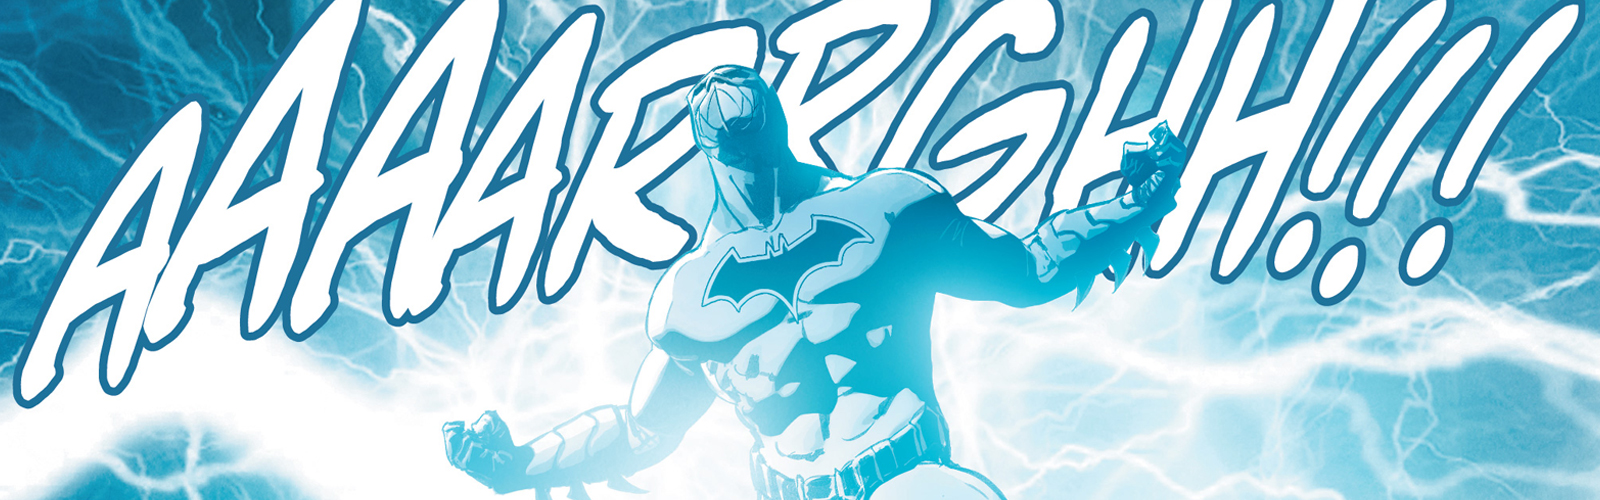 New Releases - 01-06-16, featuring Batman: Rebirth #1